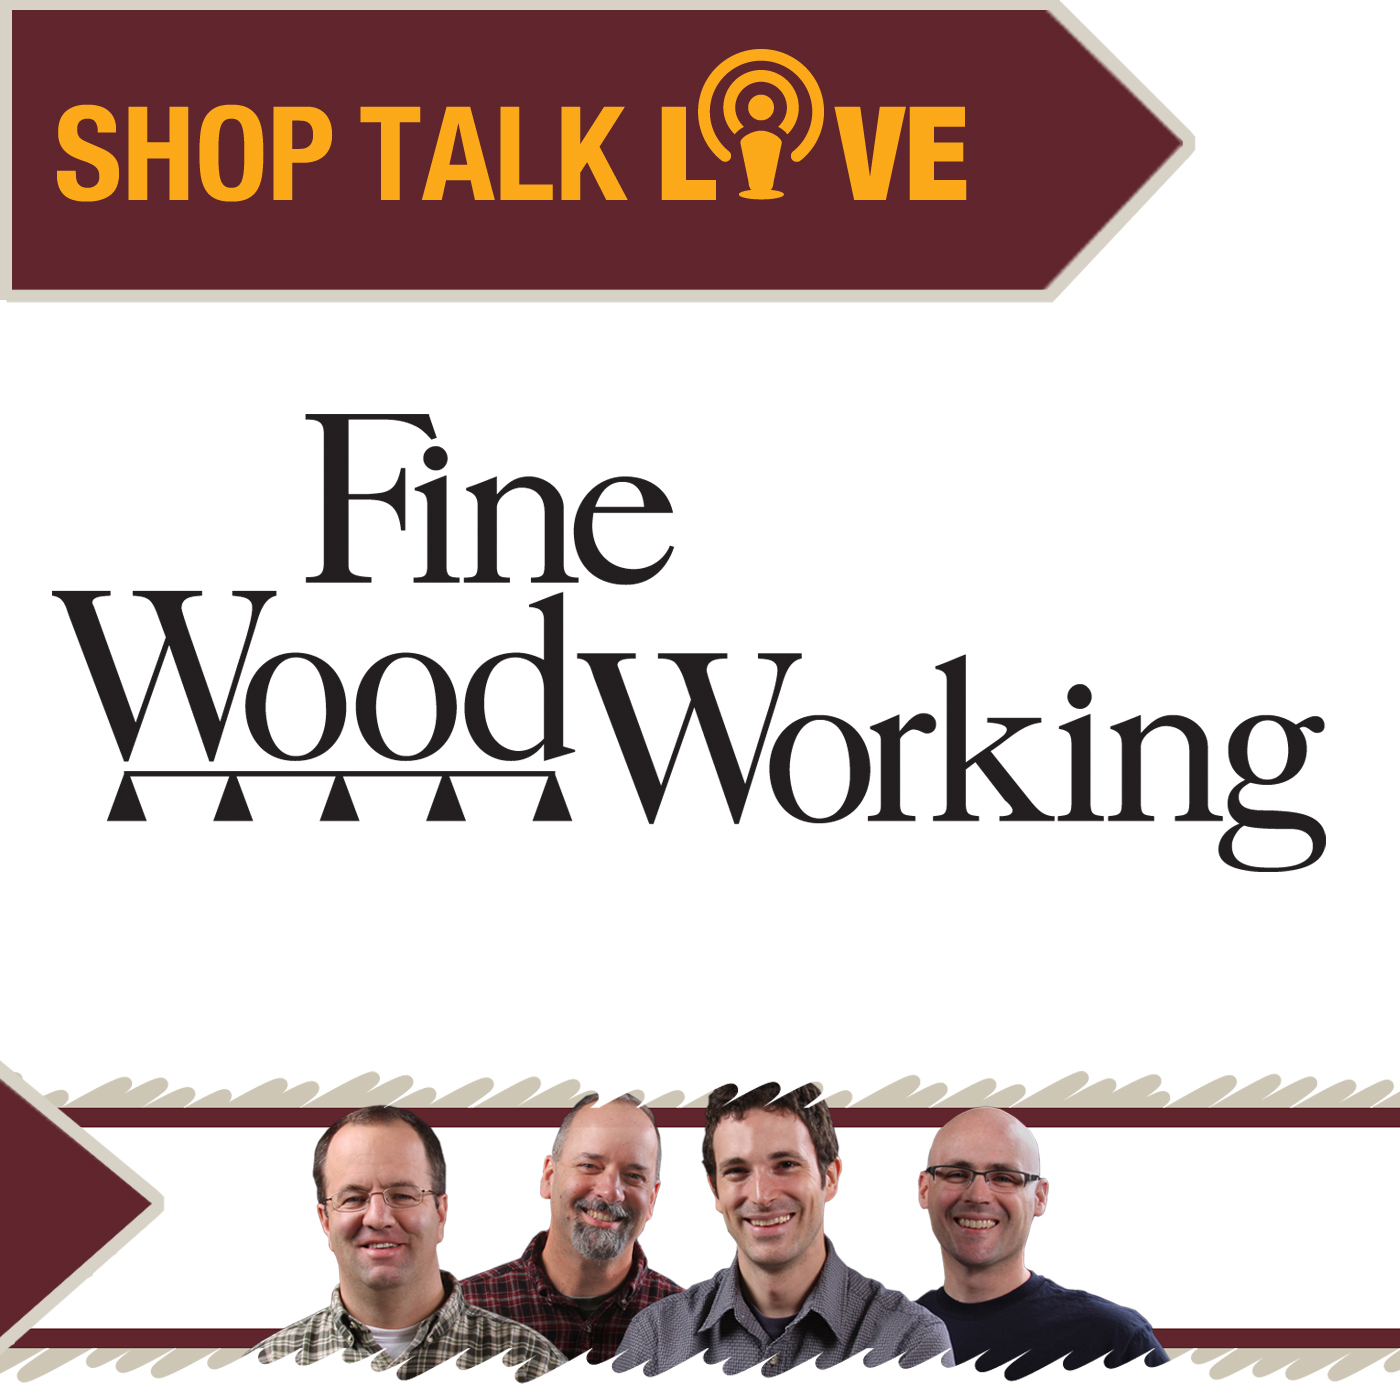 Shop Talk Live 35: Legendary Workshops